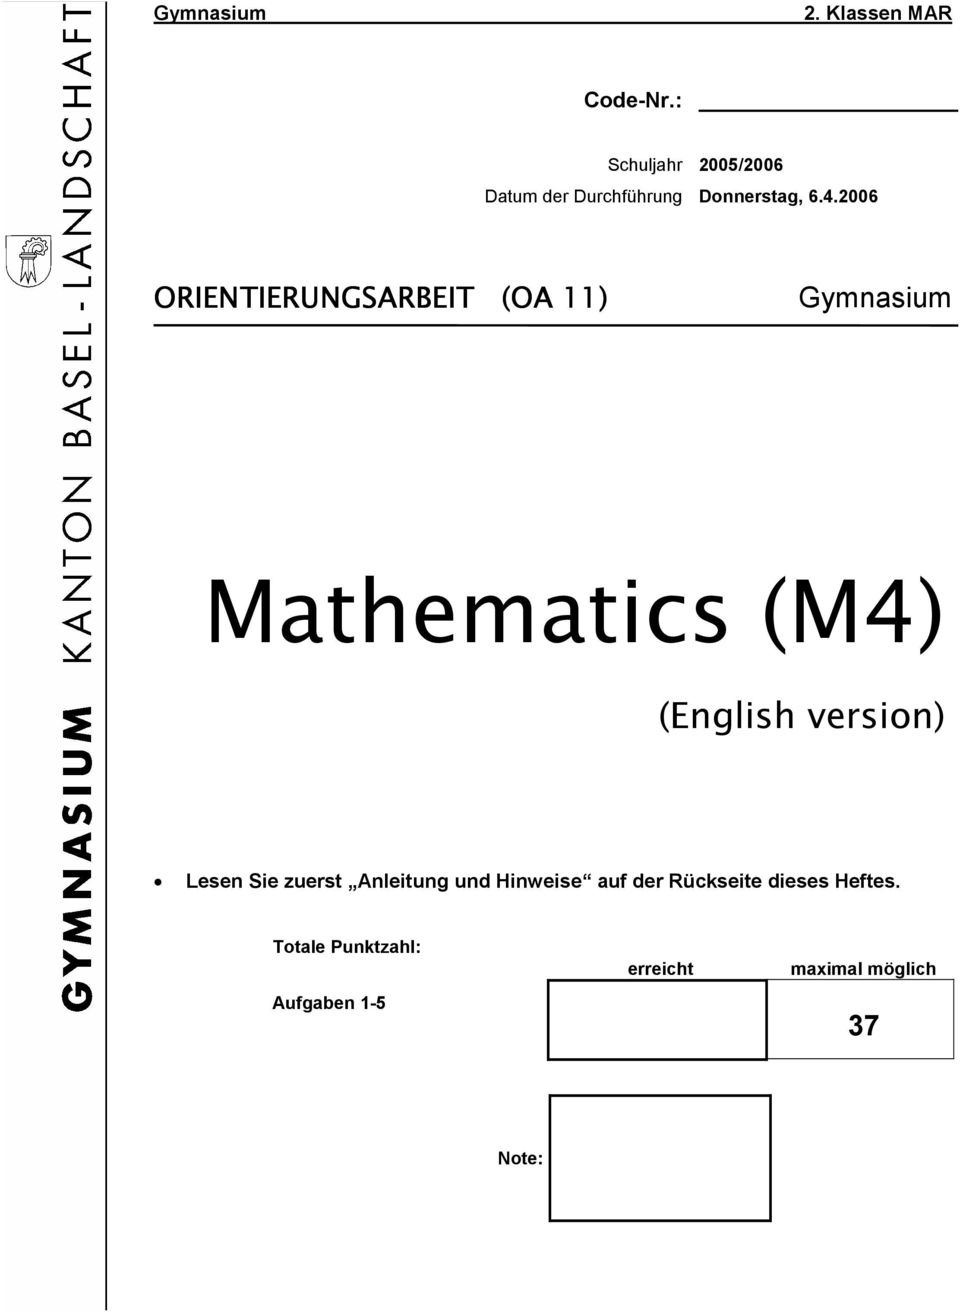 2006 ORIENTIERUNGSARBEIT (OA 11) Gymnasium Mathematics (M4) (English version)